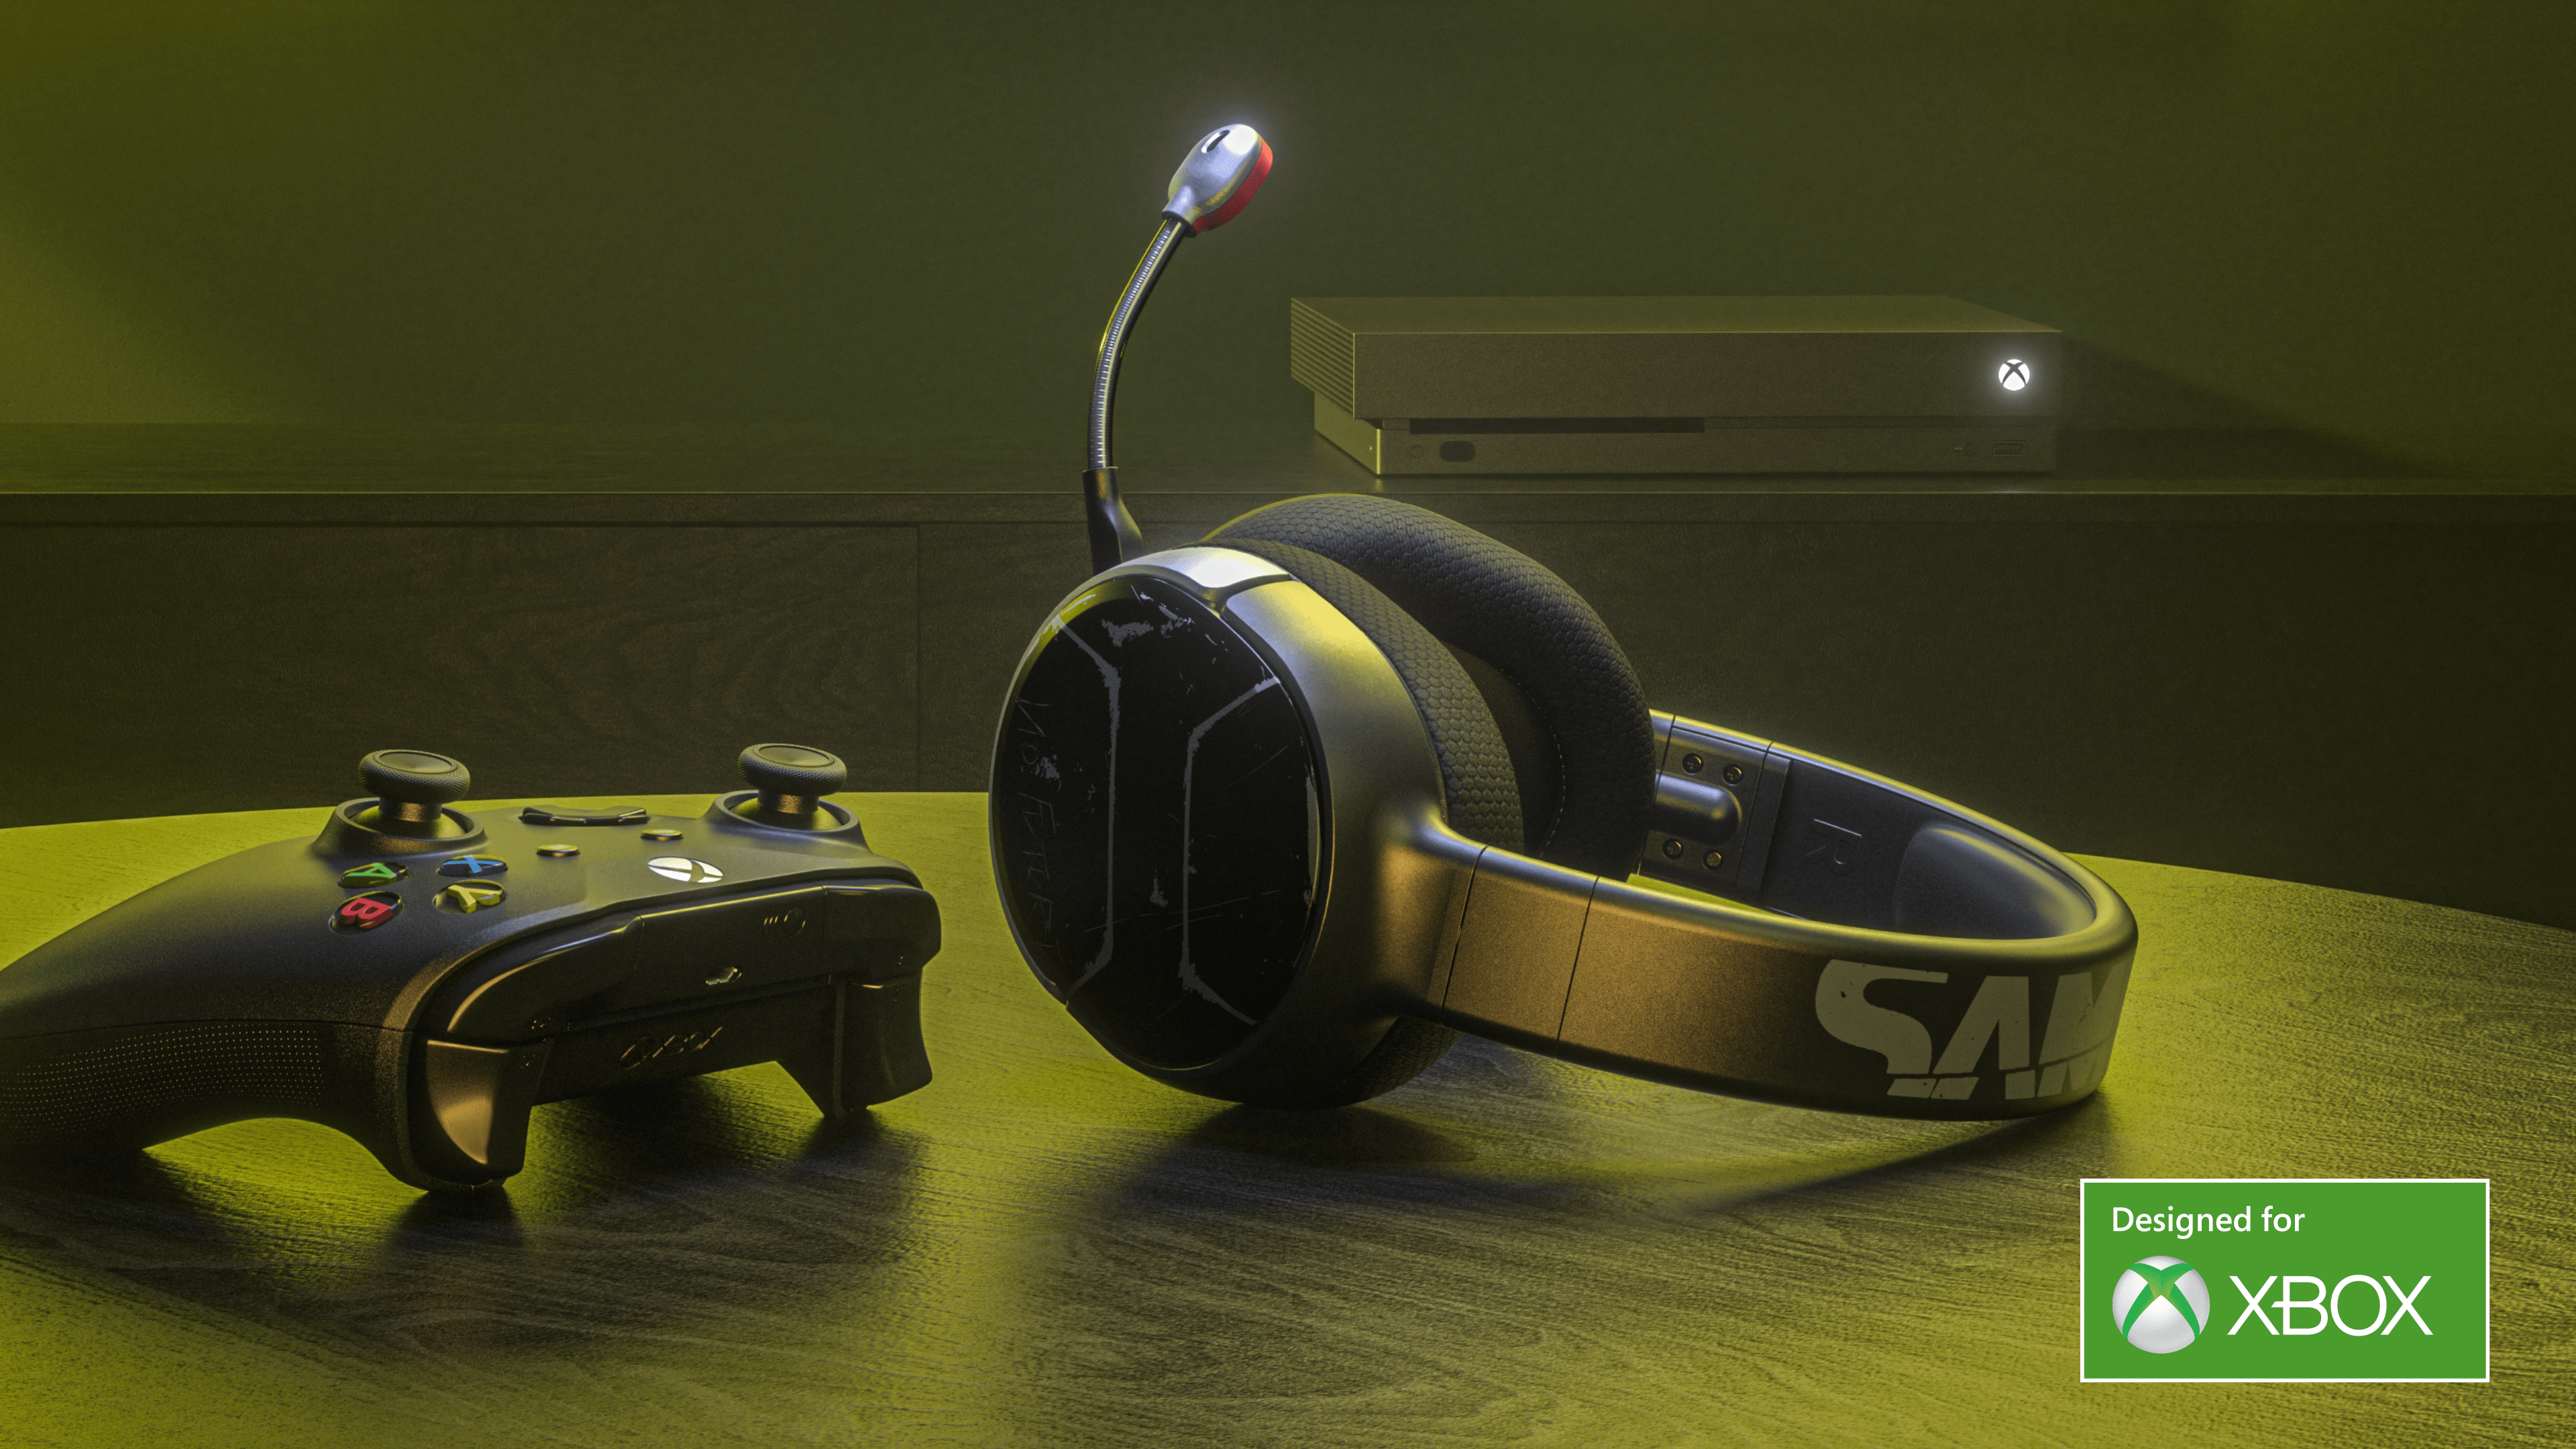 New Limited Edition Cyberpunk 2077 Headset Collection Announced By Steelseries Also Works On Xbox Series X